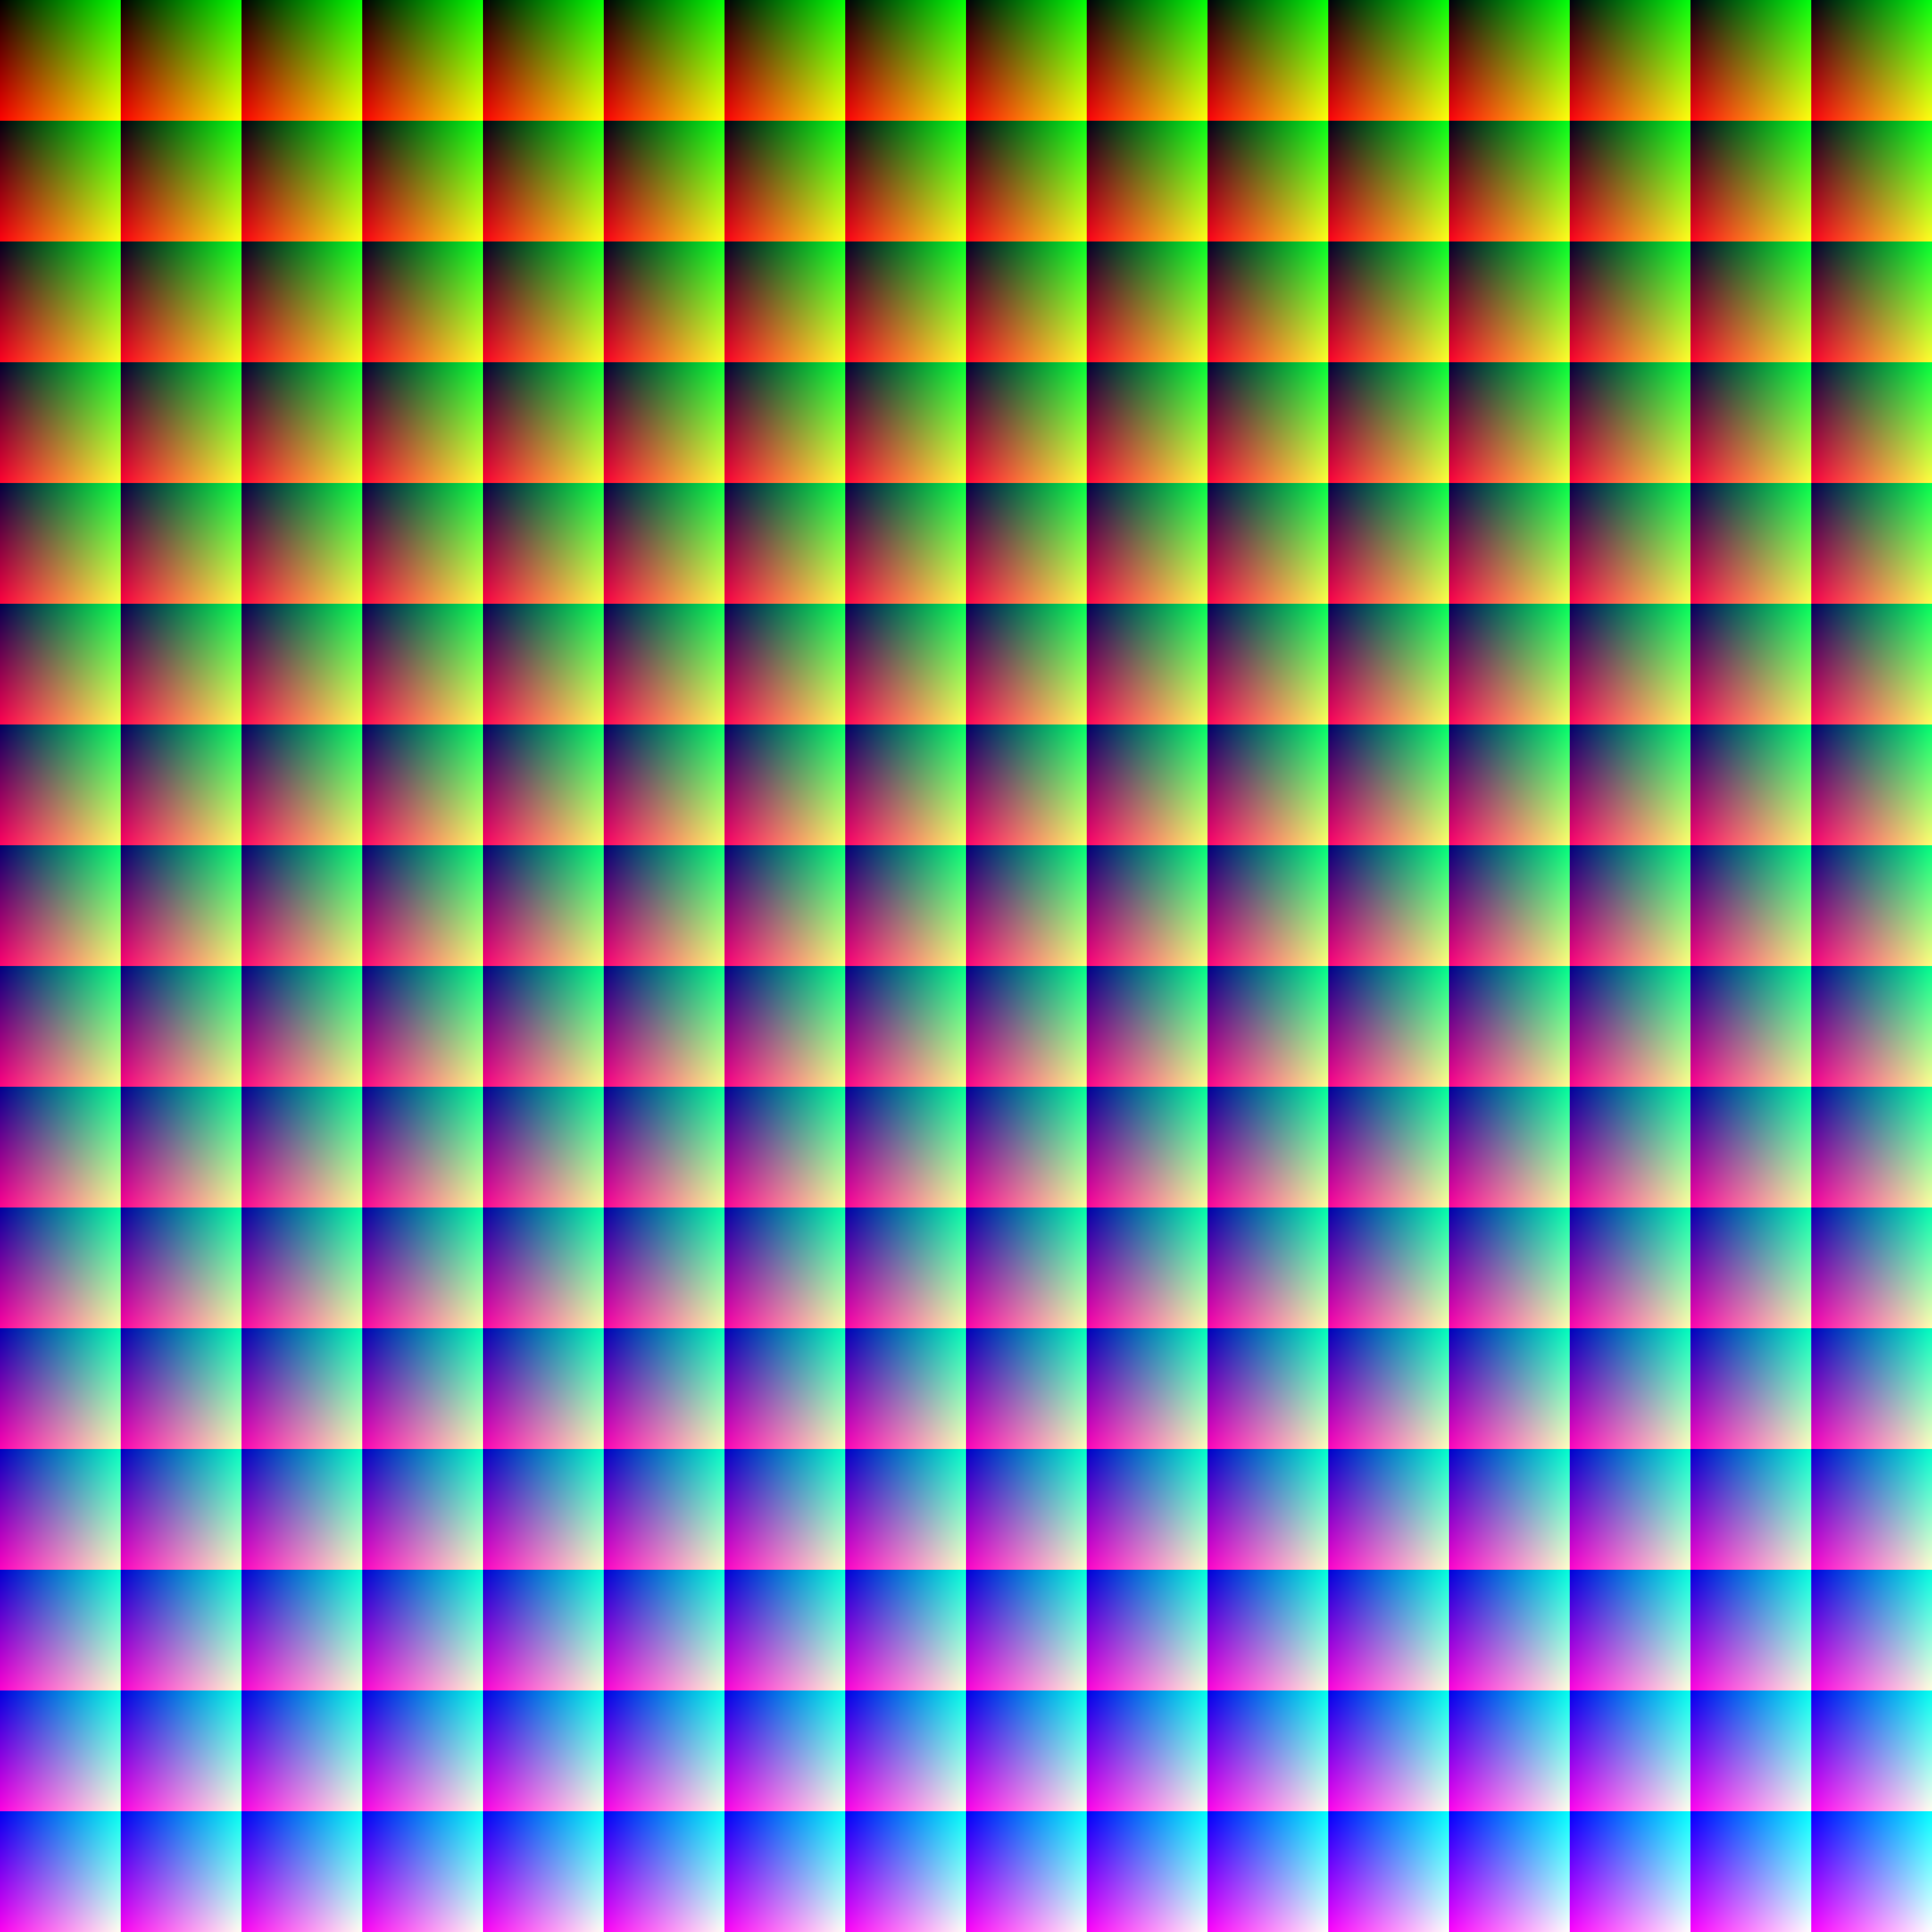 File All 24 Bit Rgb Colors Png Wikimedia Commons